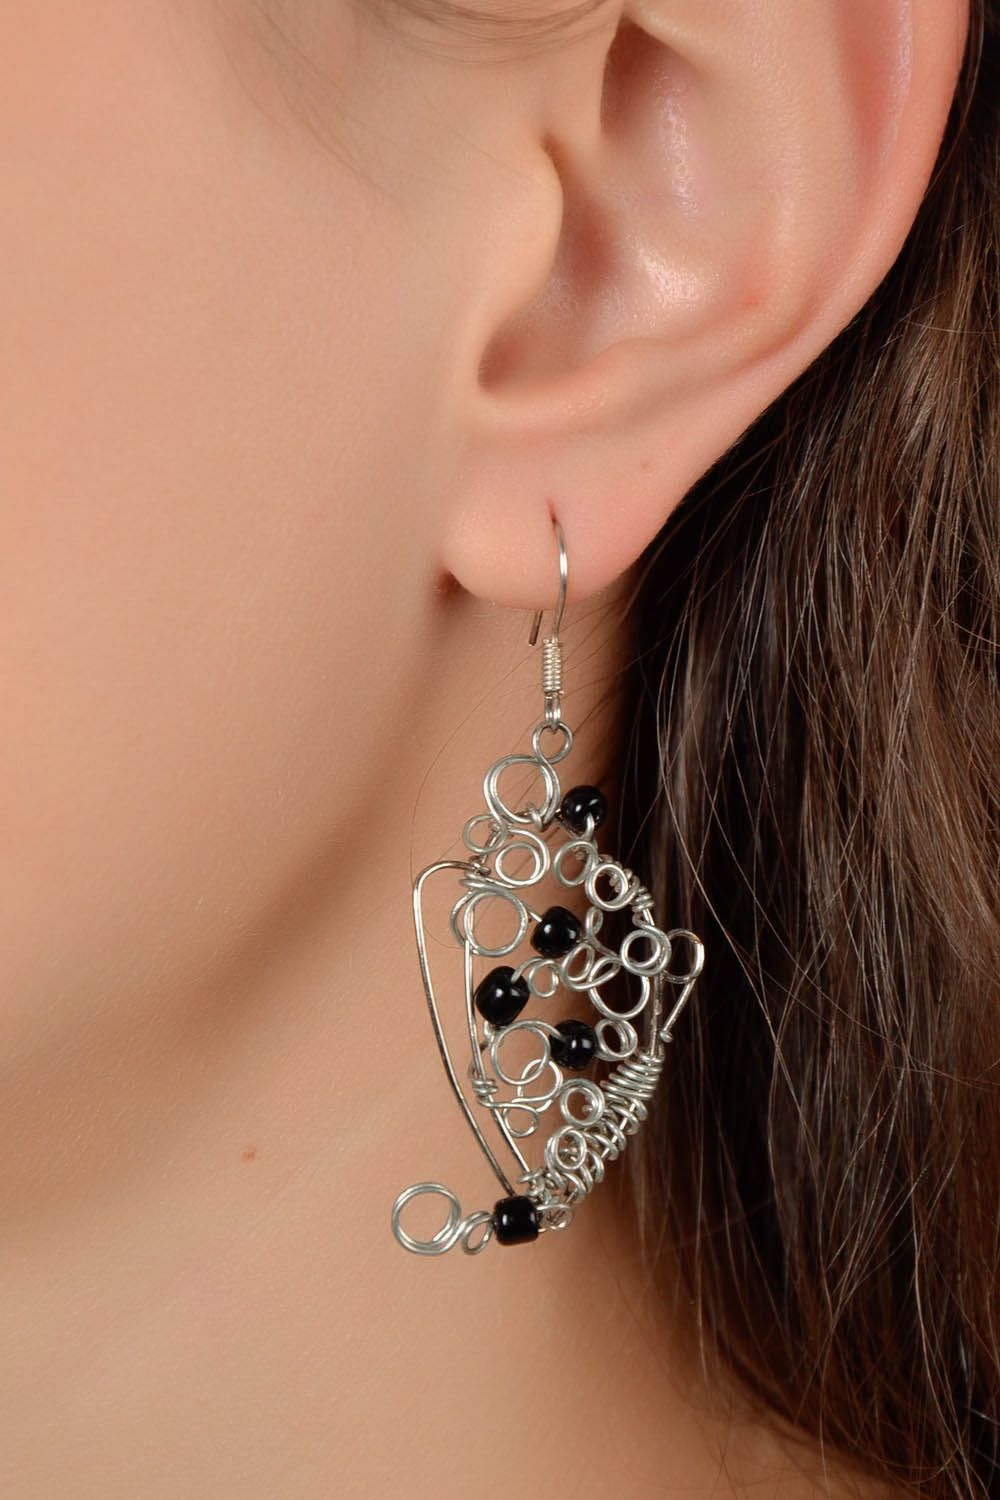 Pendant and earrings made of beads and costume jewelery cord photo 5